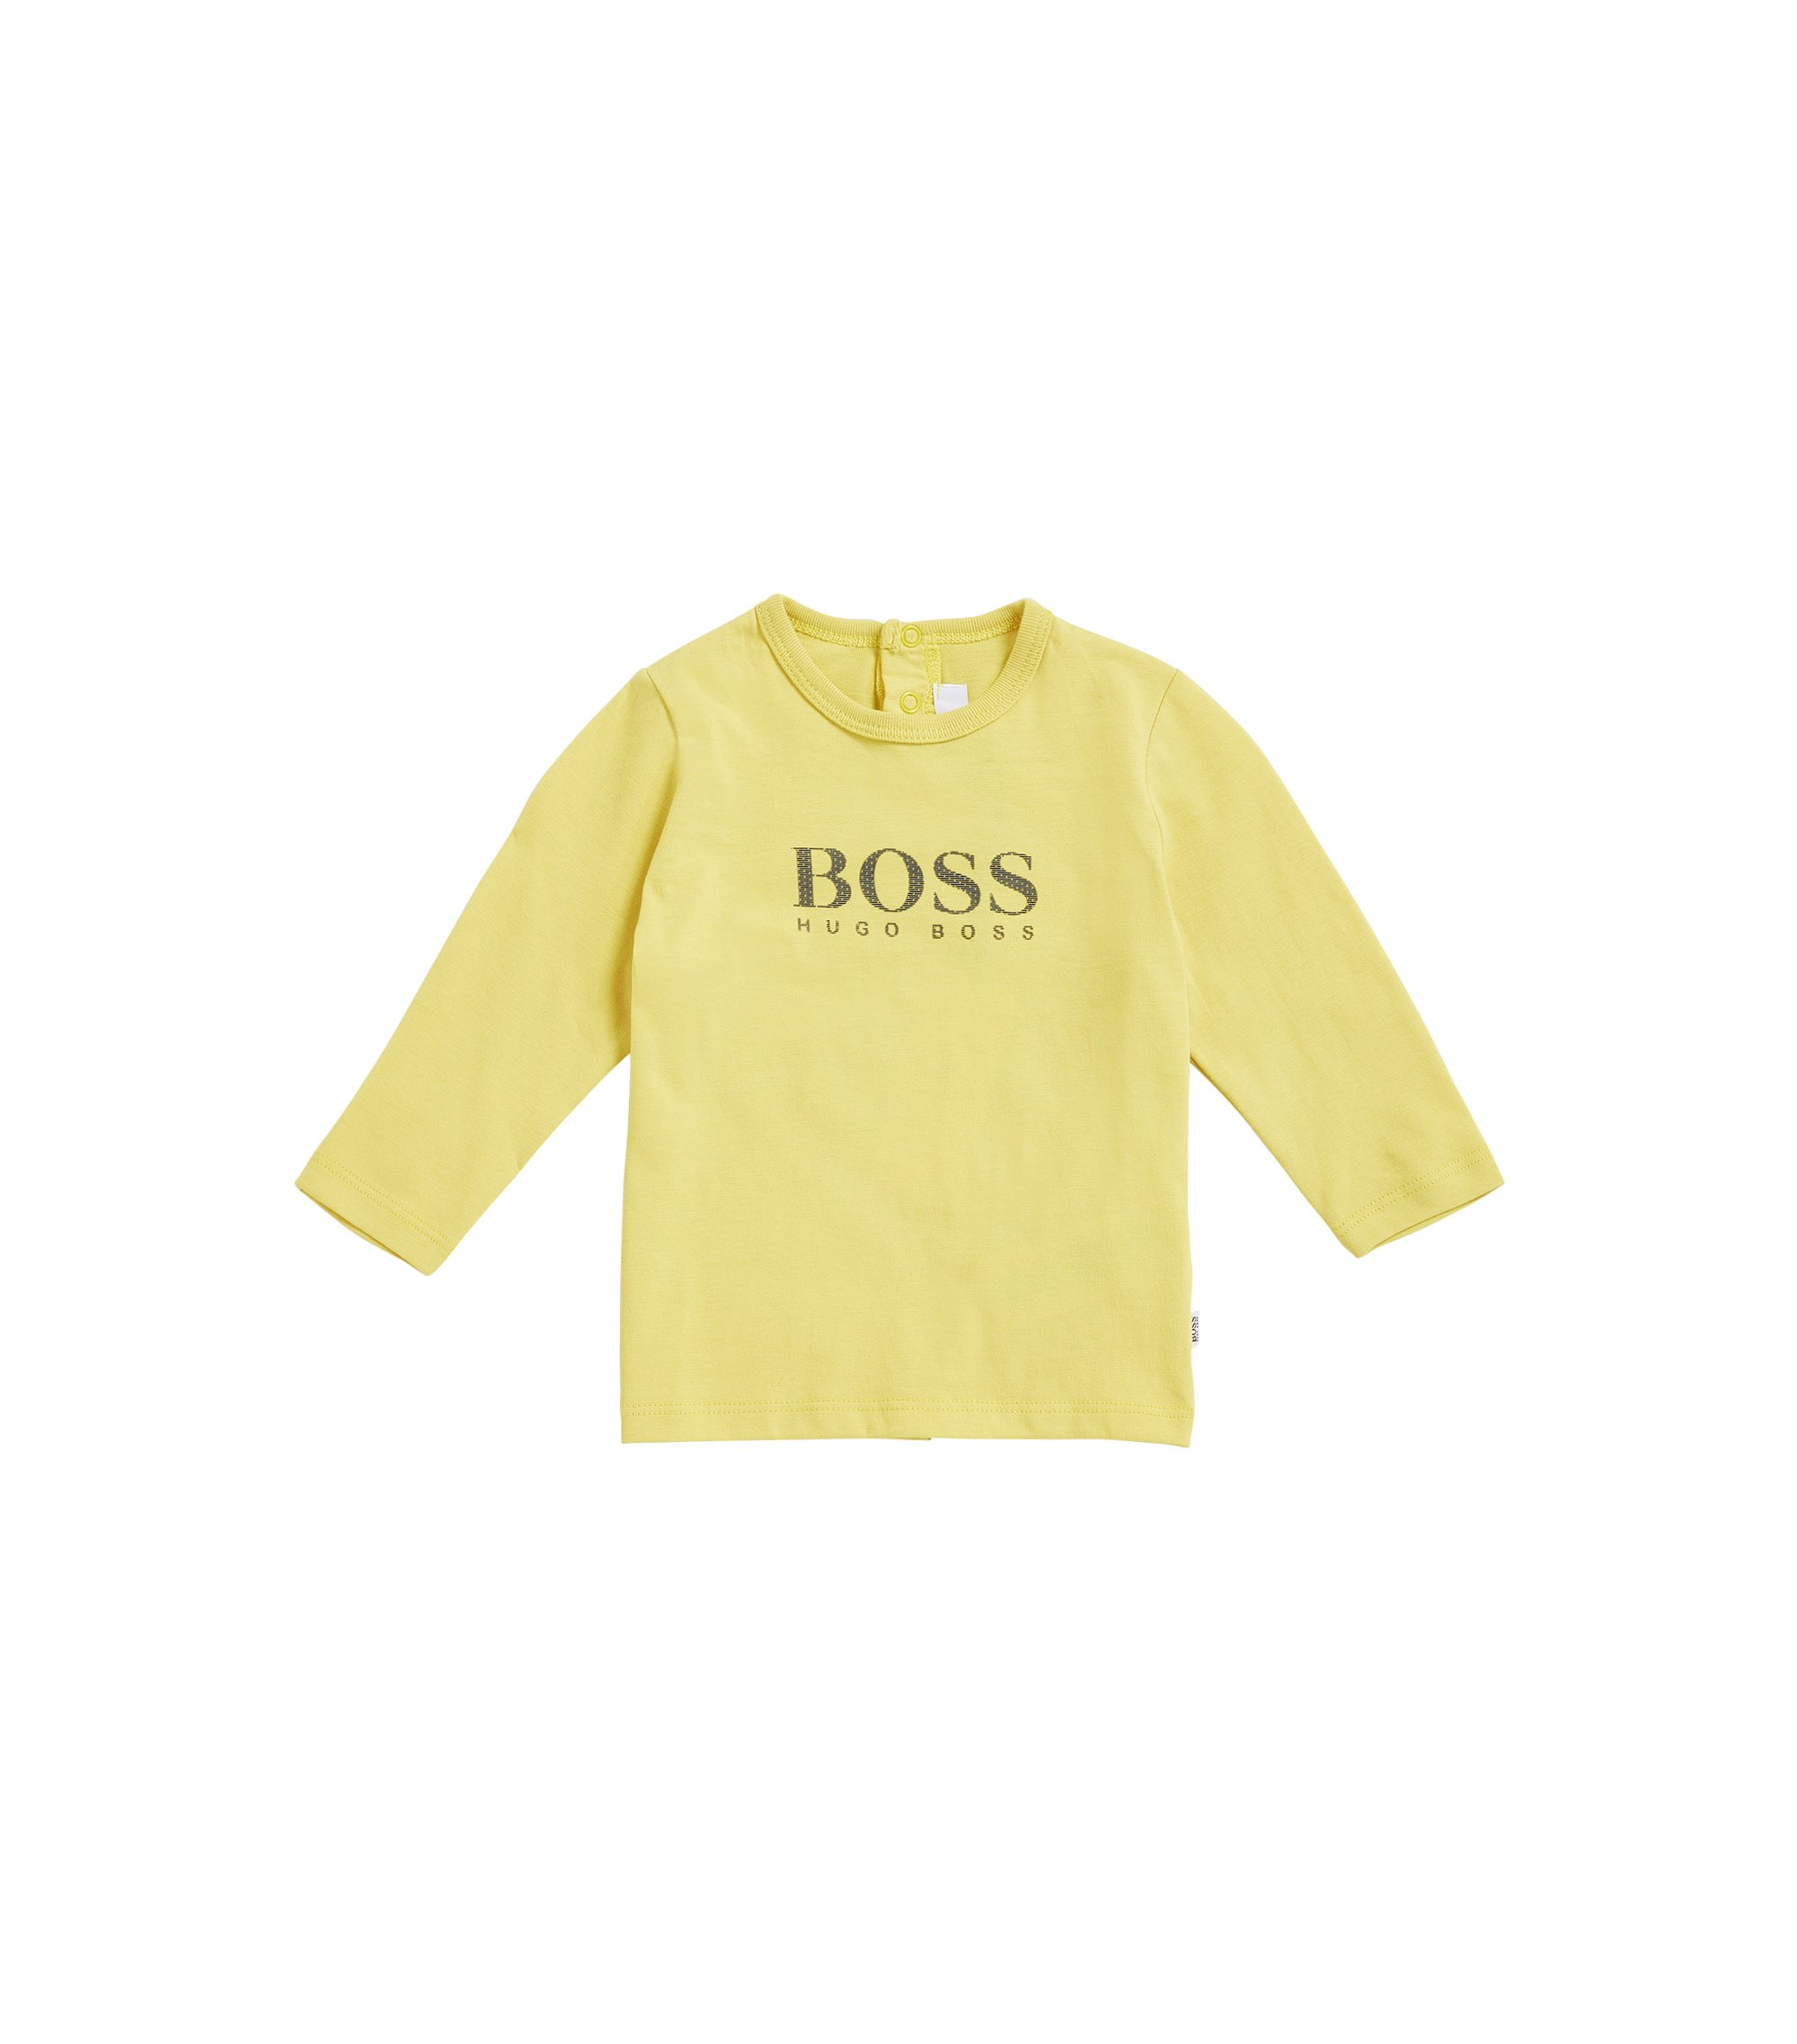 T-shirt en jersey de coton pour enfants Regular Fit, Jaune